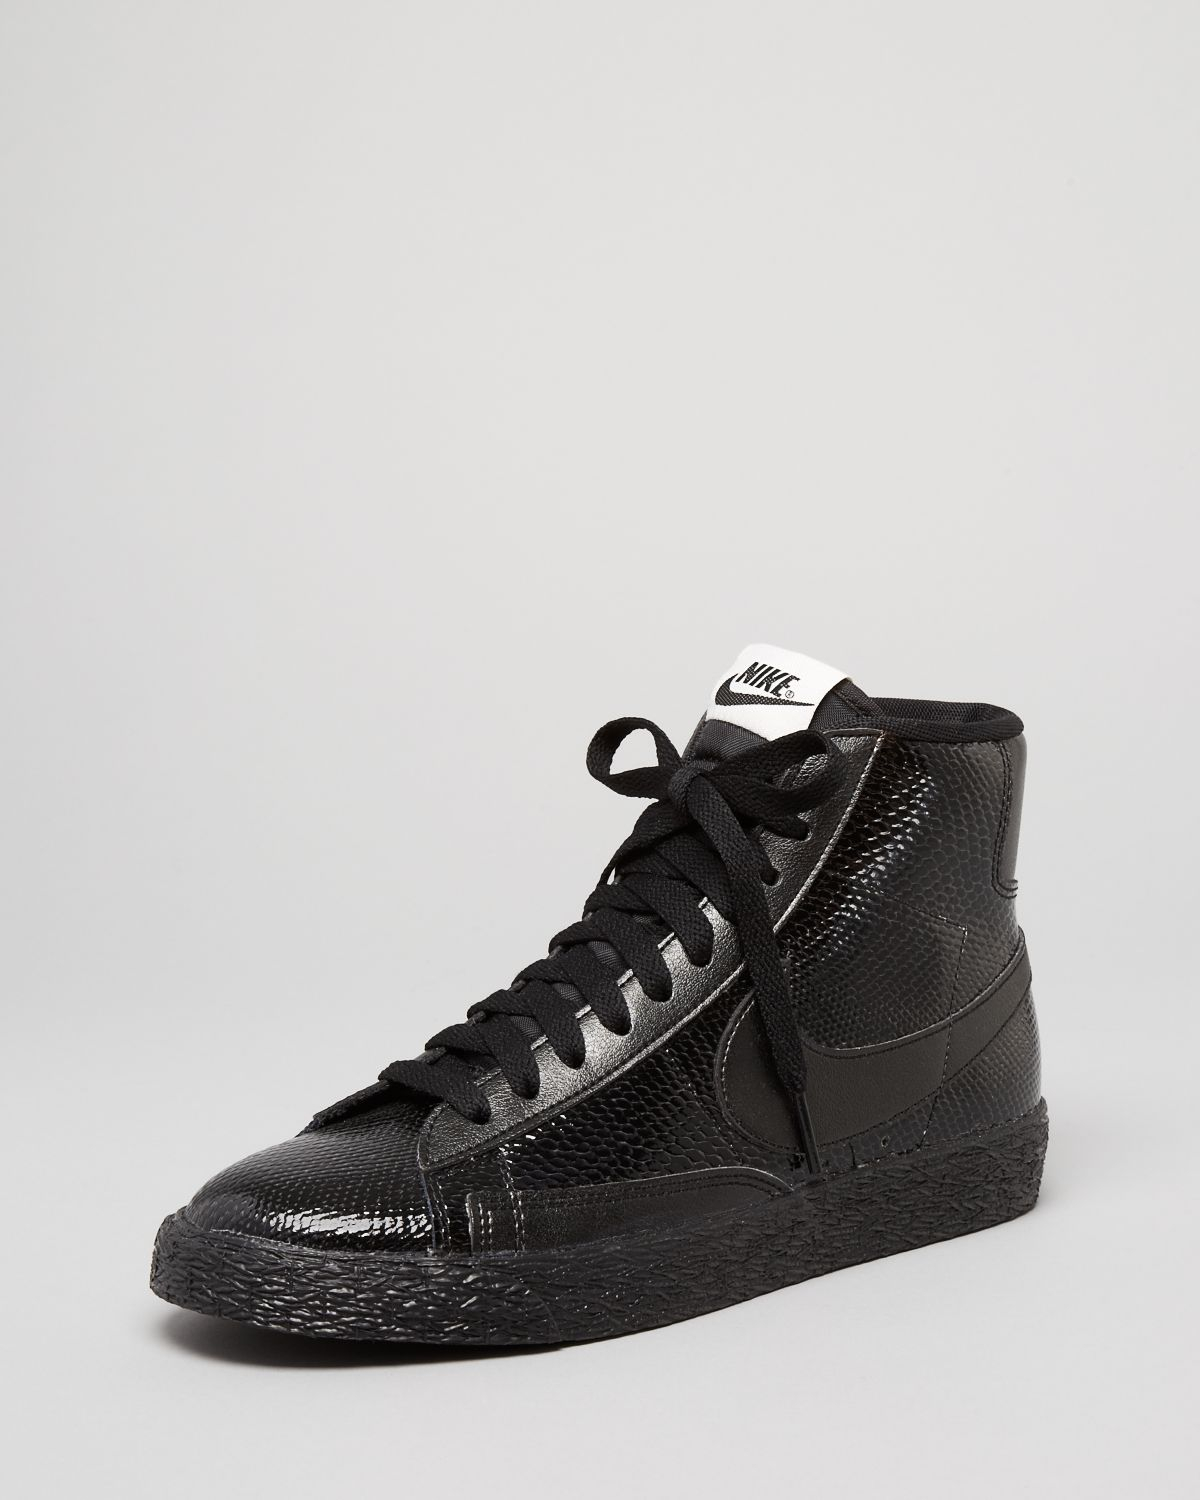 9c641fa0cc34 ... reduced lyst nike lace up sneakers womens blazer snake print mid in  black 397c8 16639